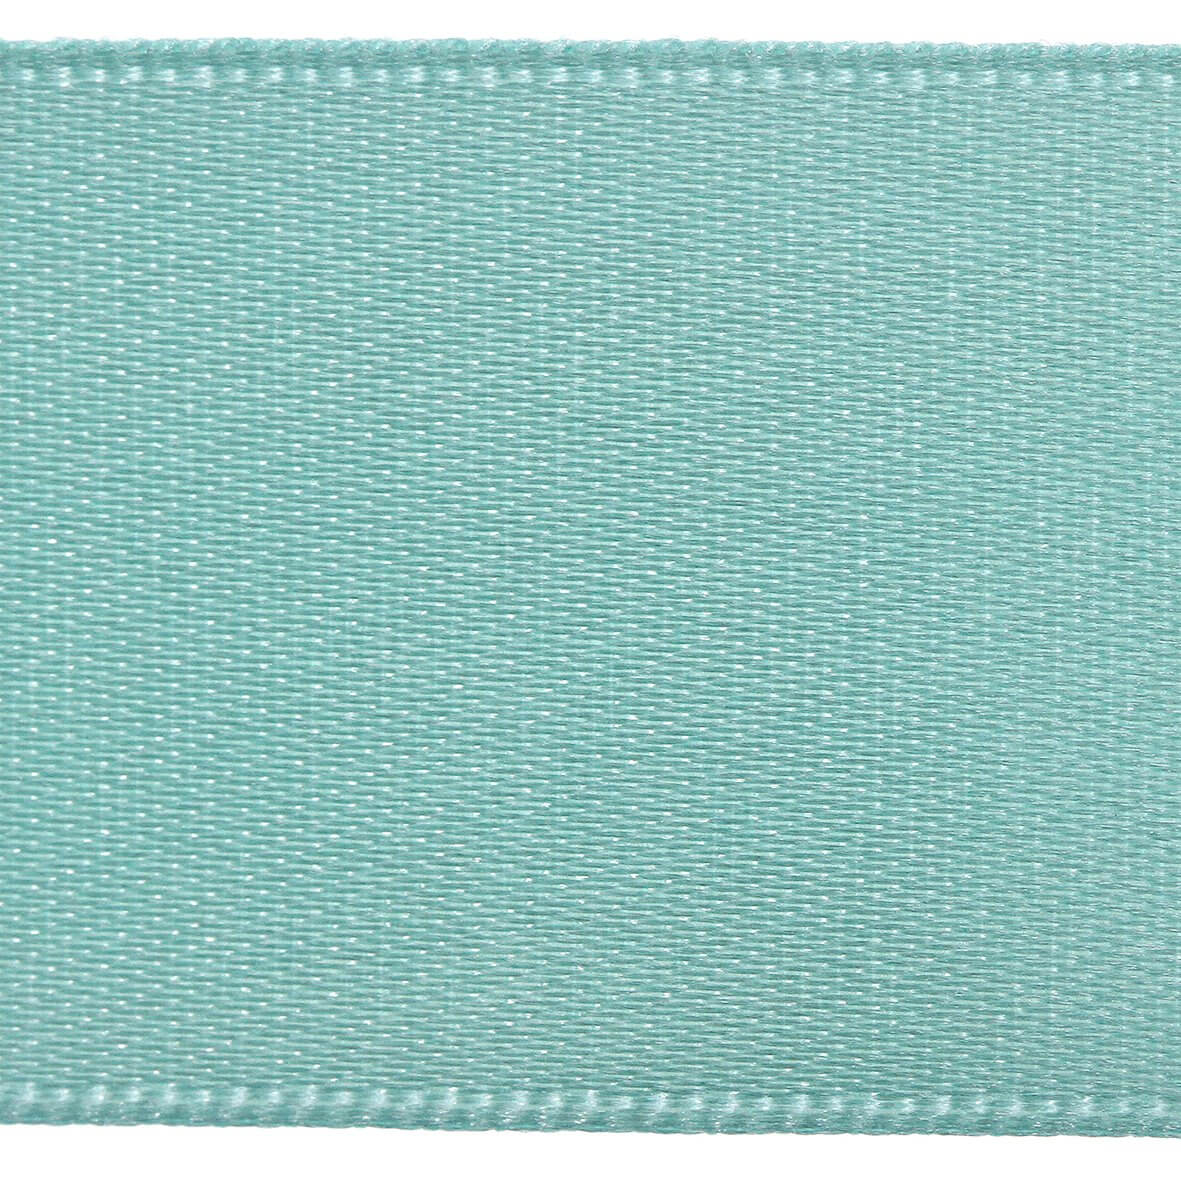 7mm Berisfords Satin Ribbon - Aqua Colour 78